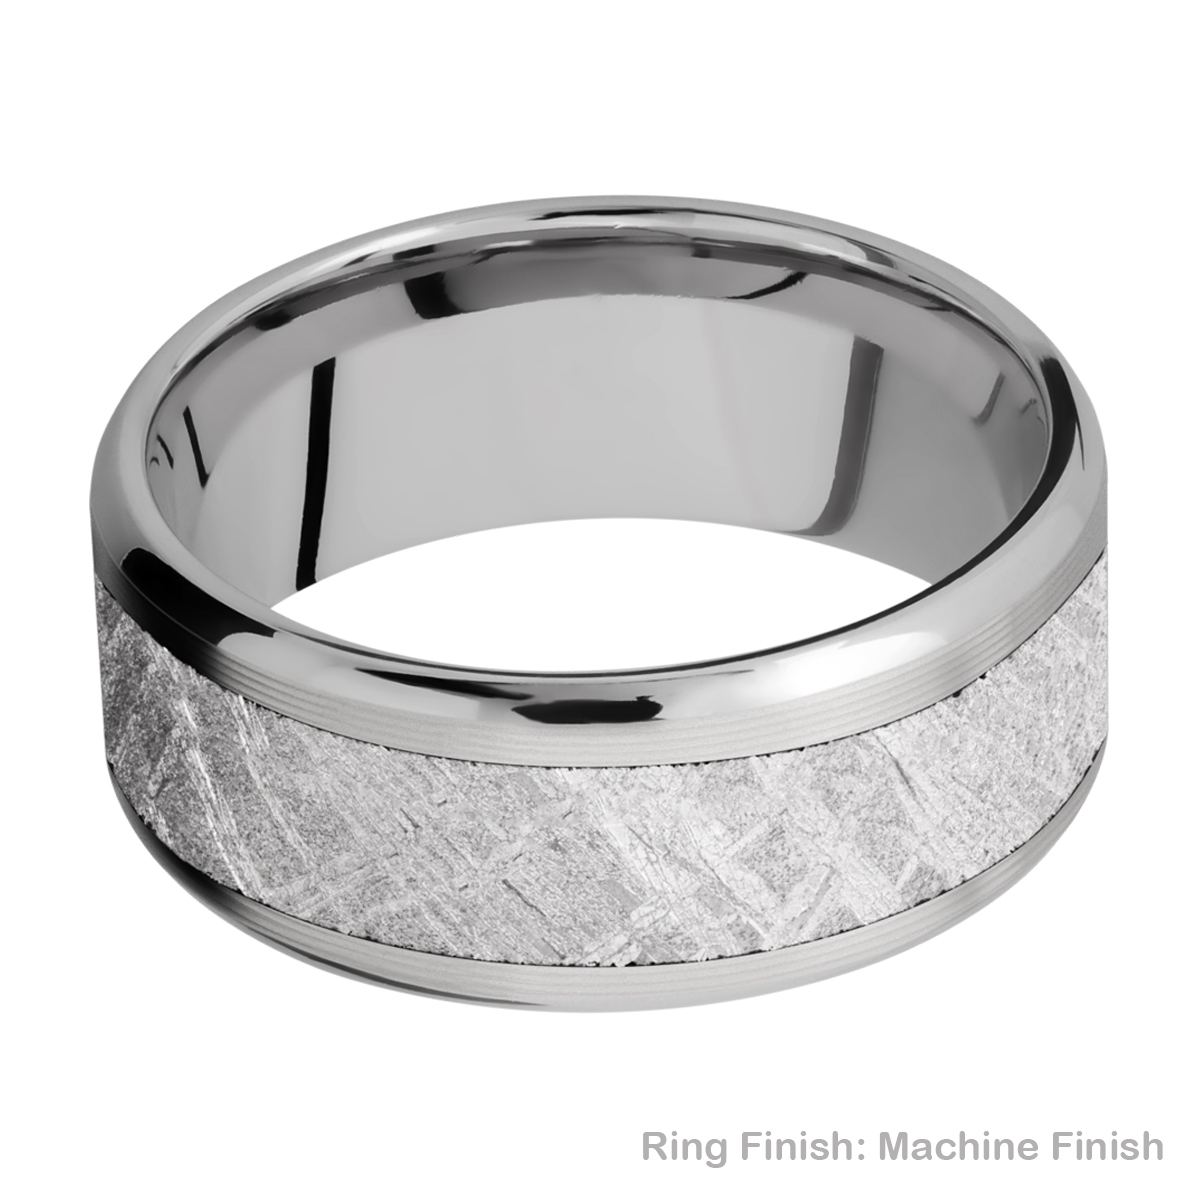 Lashbrook 9B16(NS)/METEORITE Titanium Wedding Ring or Band Alternative View 8